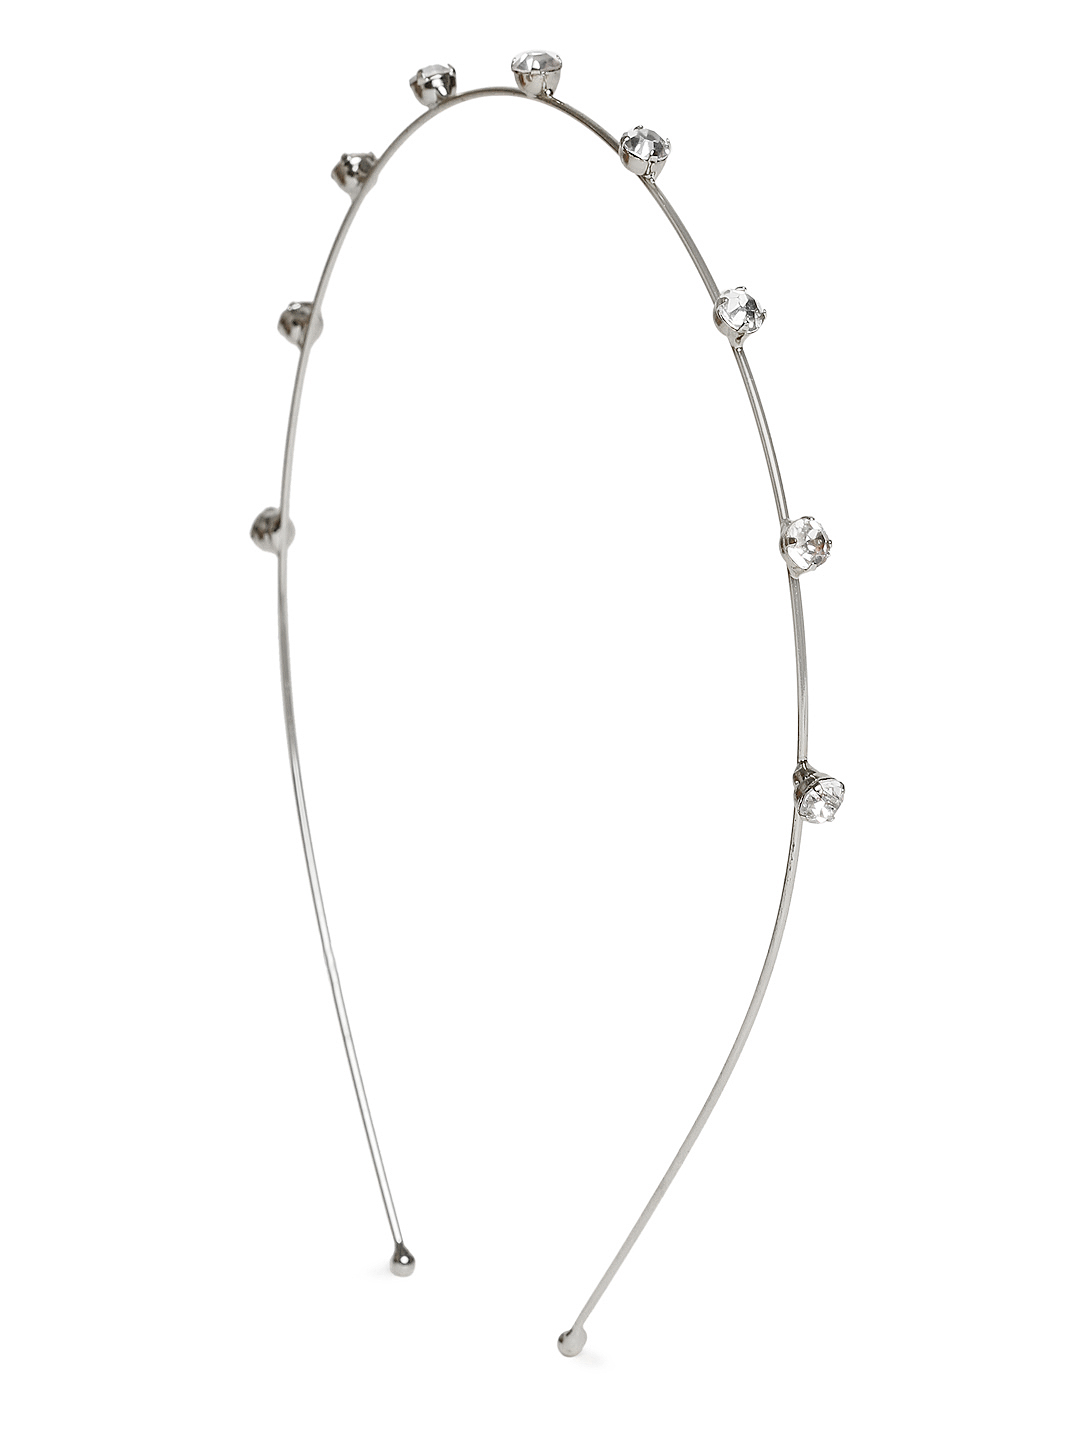 ToniQ Silver-Toned Stone-Studded Hairband